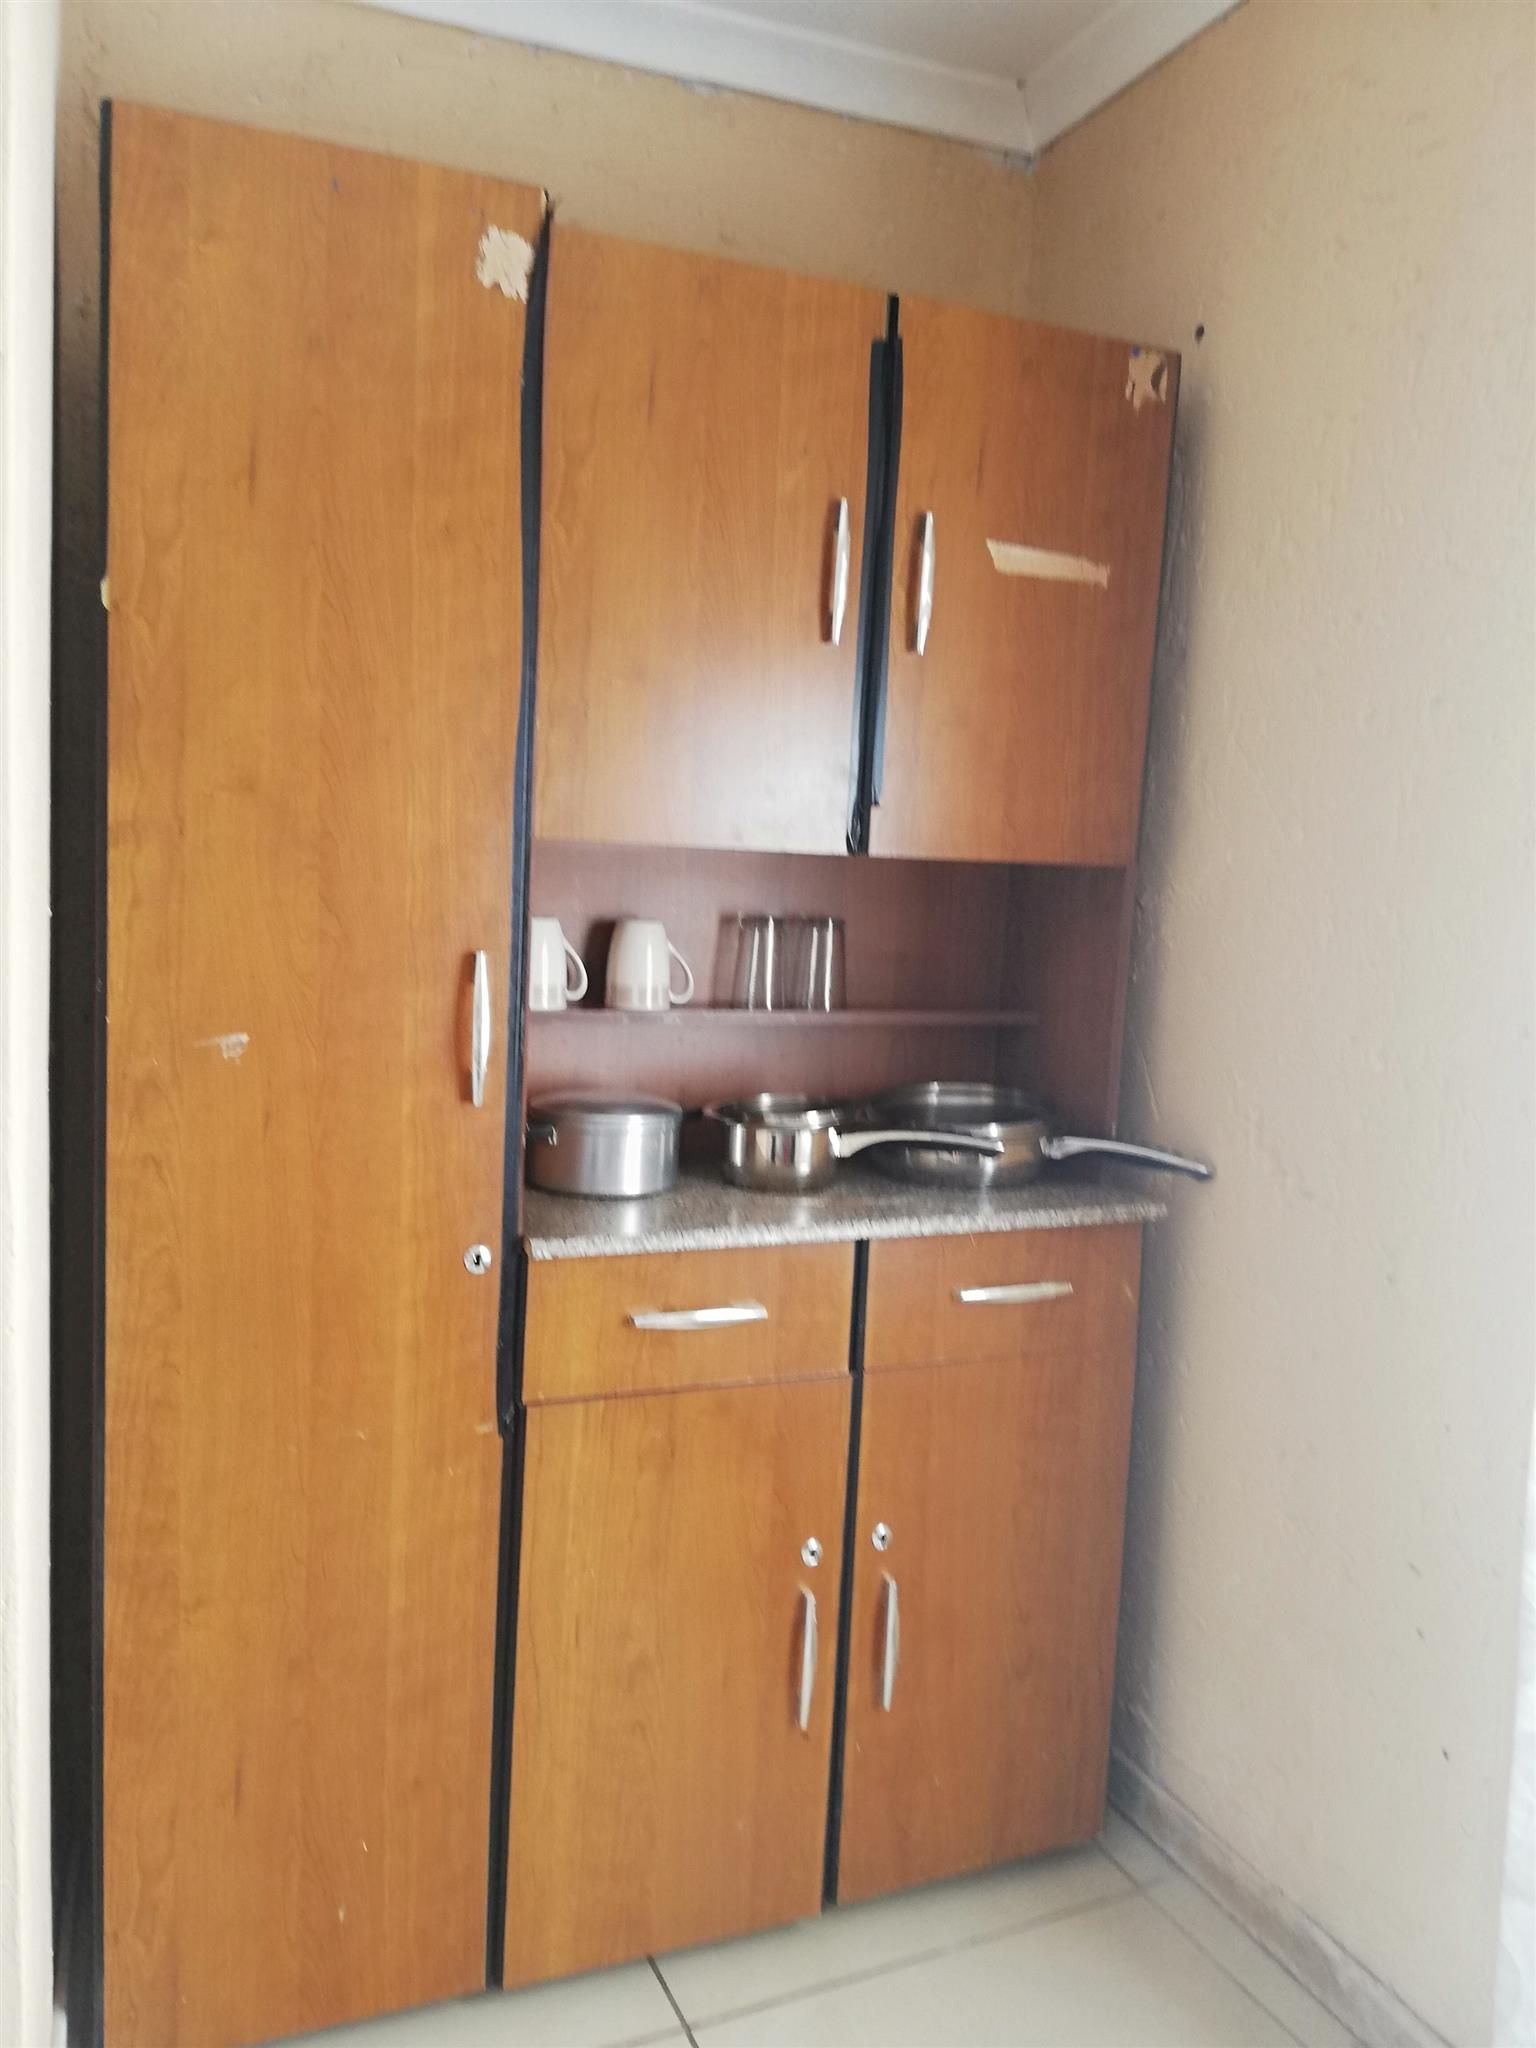 PRIVATE AND COMFY APARTMENT FOR RENT IN WALKERVILLE